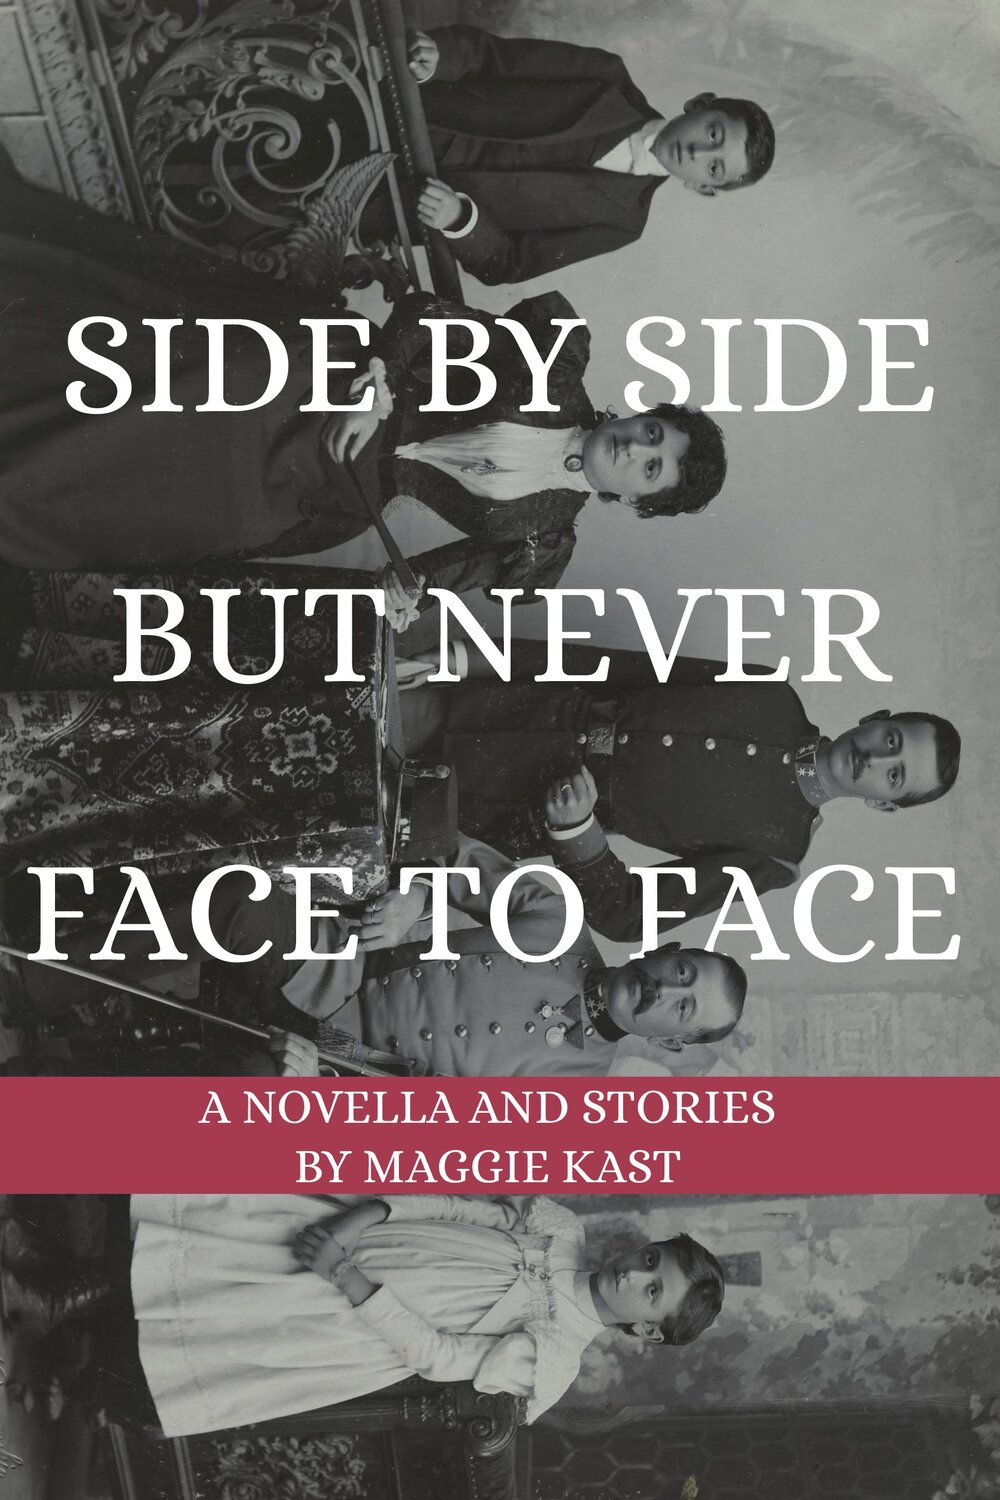 Sidie by Side but Never Face to Face